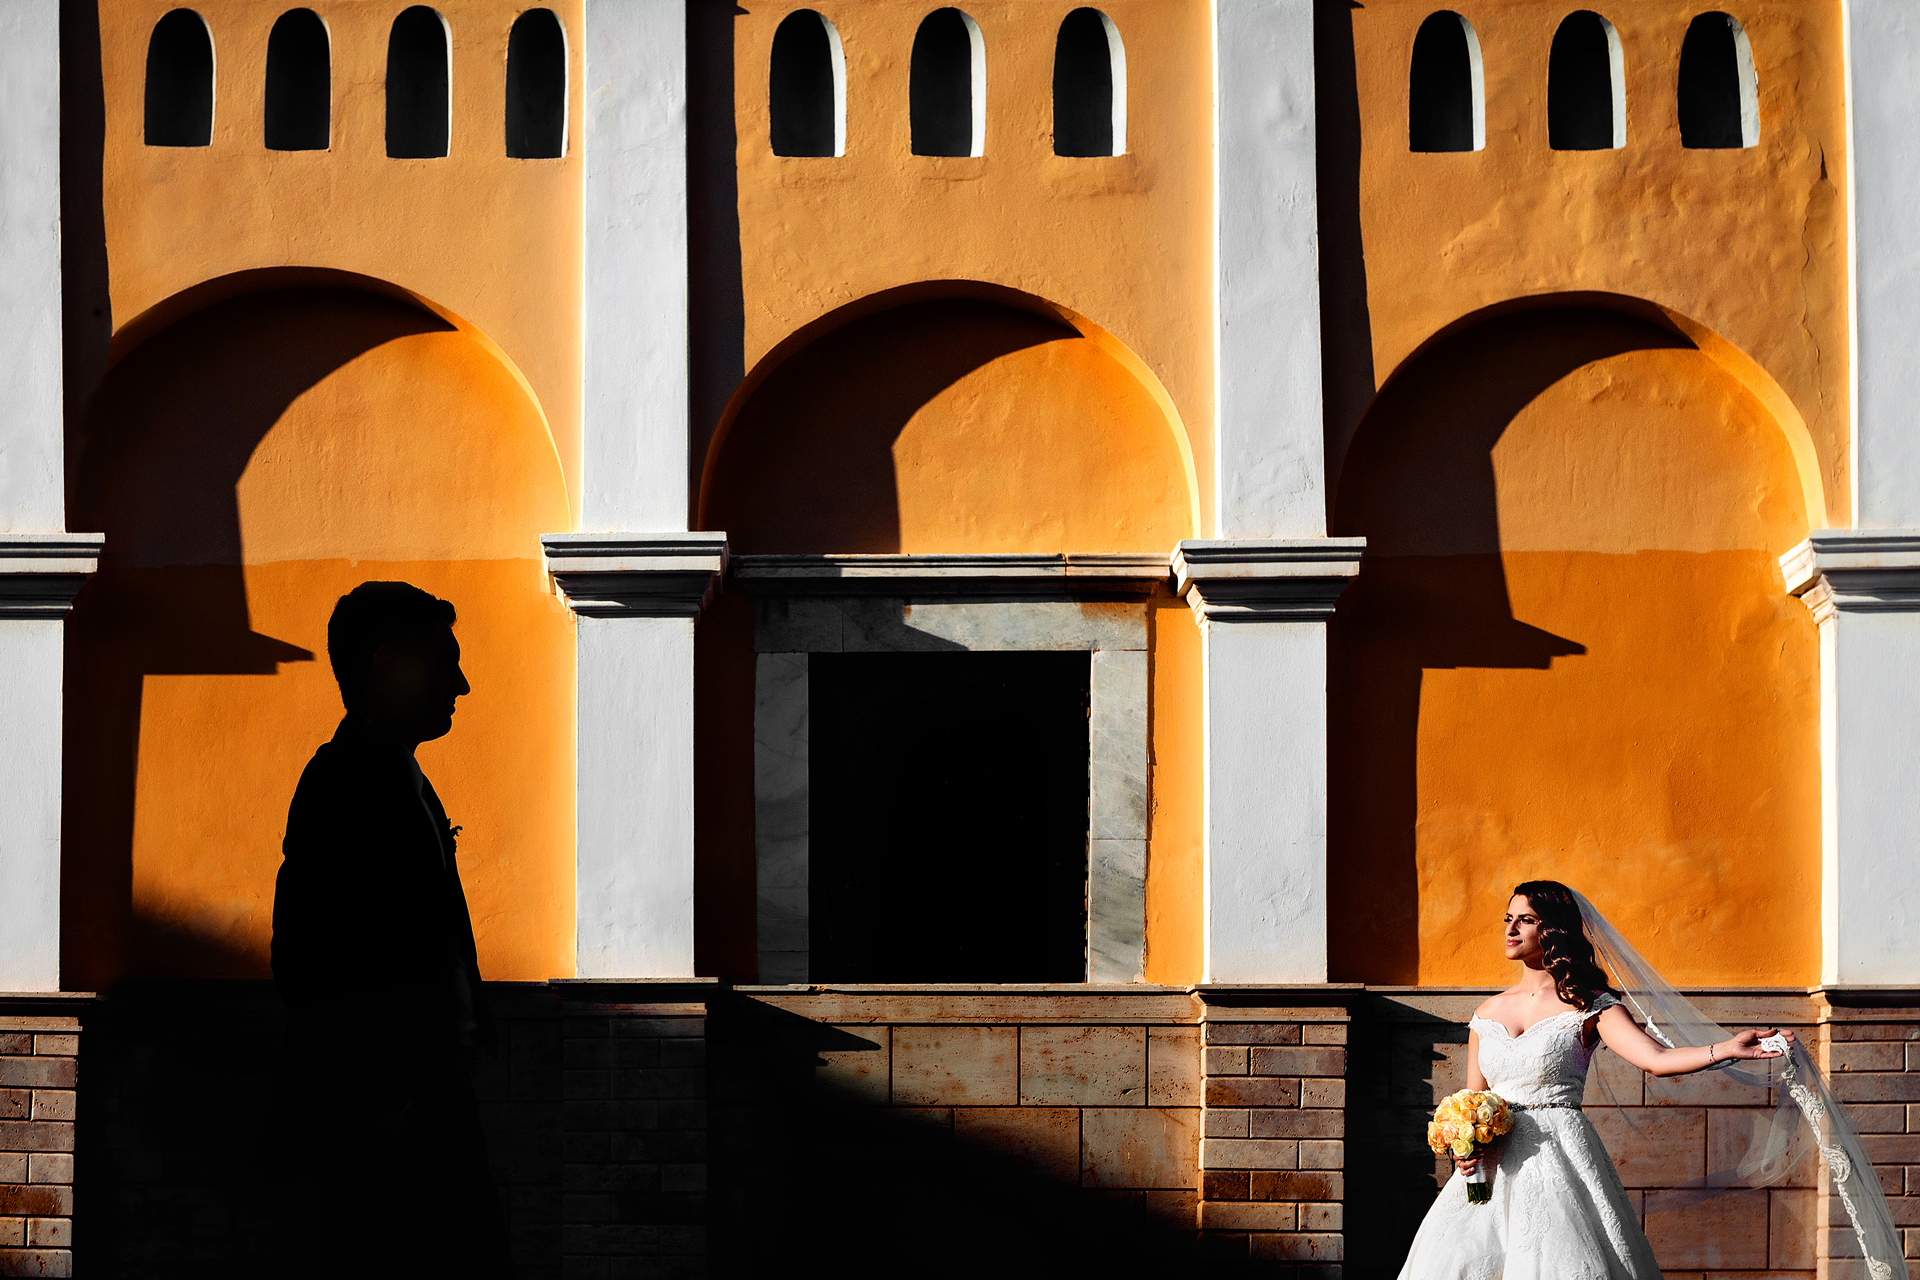 Wedding Photojournalists can make creative portraits on wedding day.